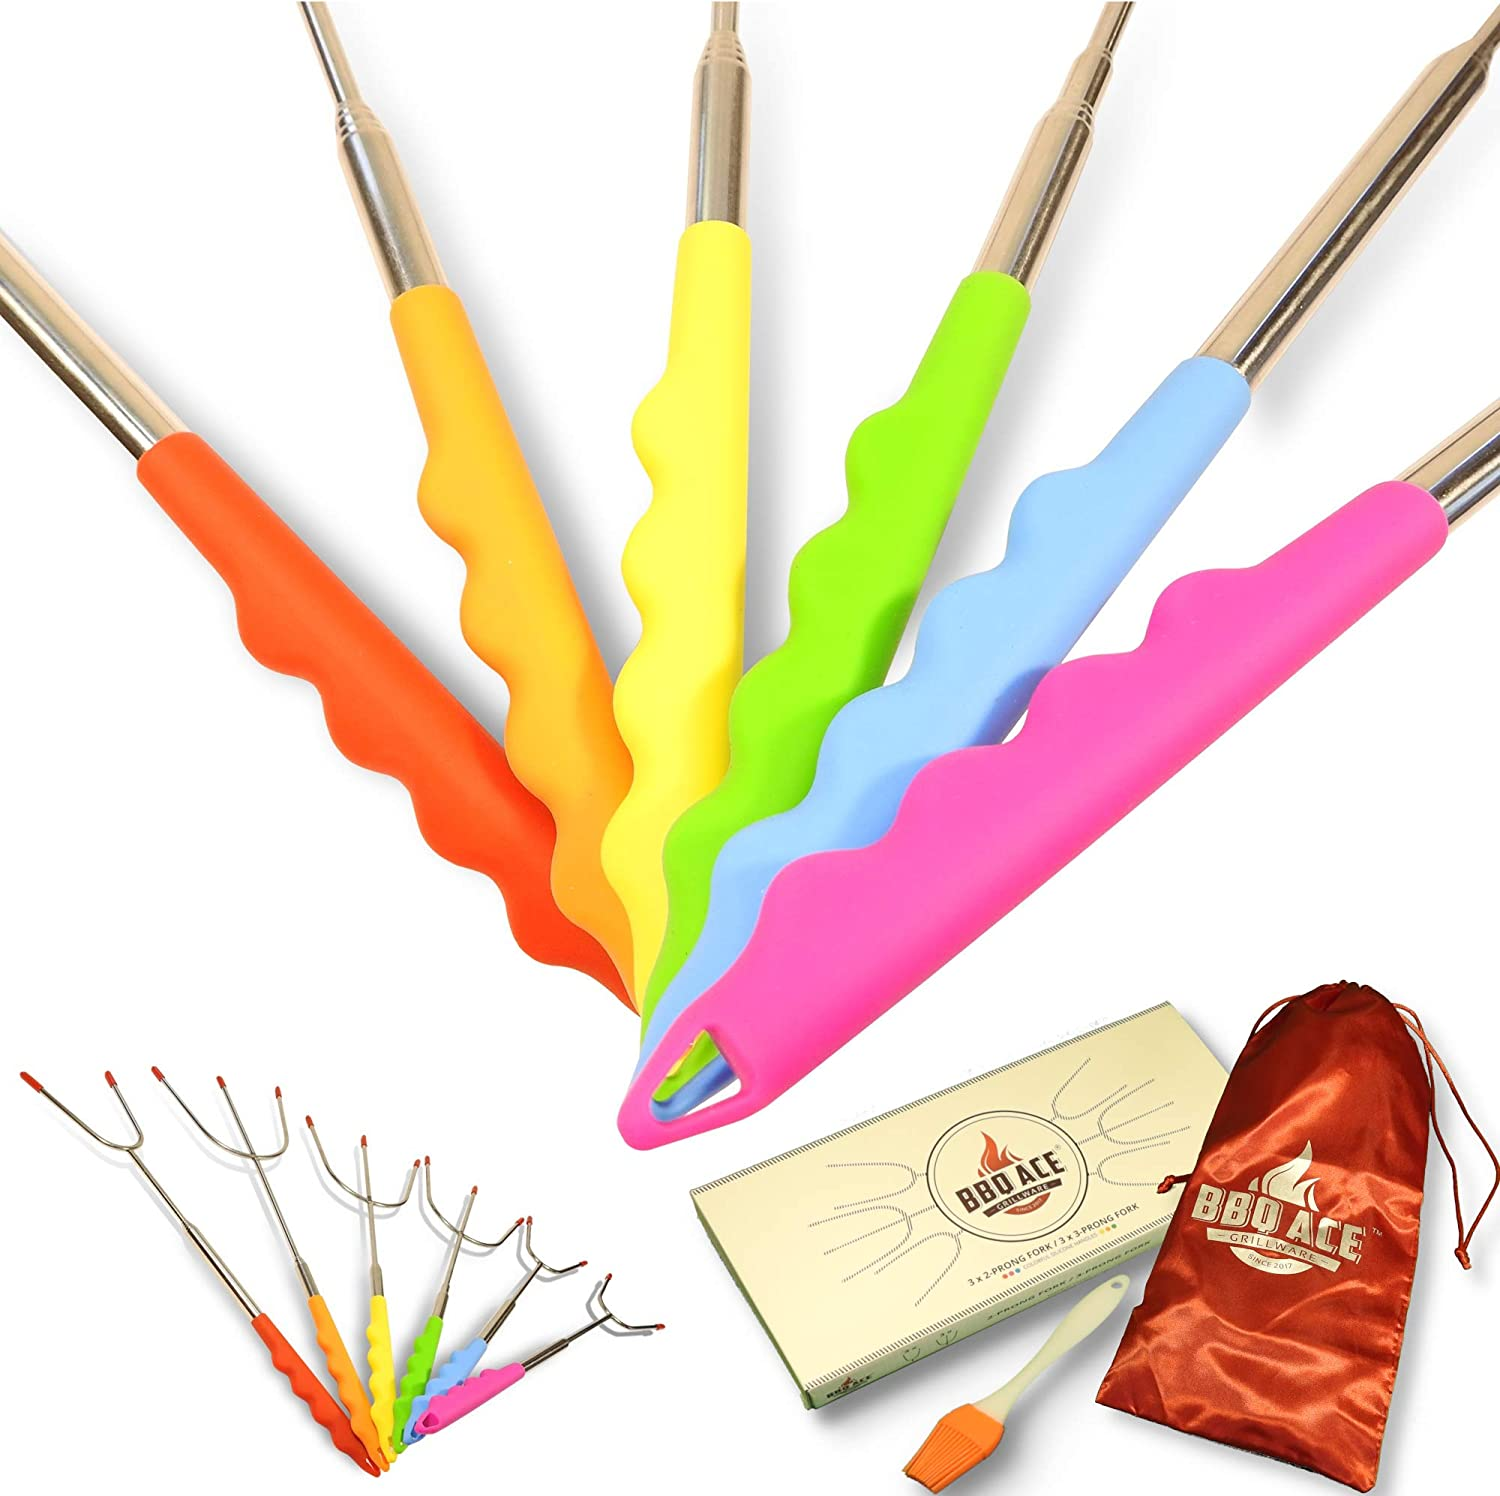 Marshmallow Roasting Sticks w Colorful Silicone Handles for Kids, Fire Pit, Campfire, Bonfire, Fireplace | 6 Extra Long Extendable Fork Skewers | SMORE, Hot Dog, Sausage, BBQ, Grilling, Camping 71JyjtwG4lL